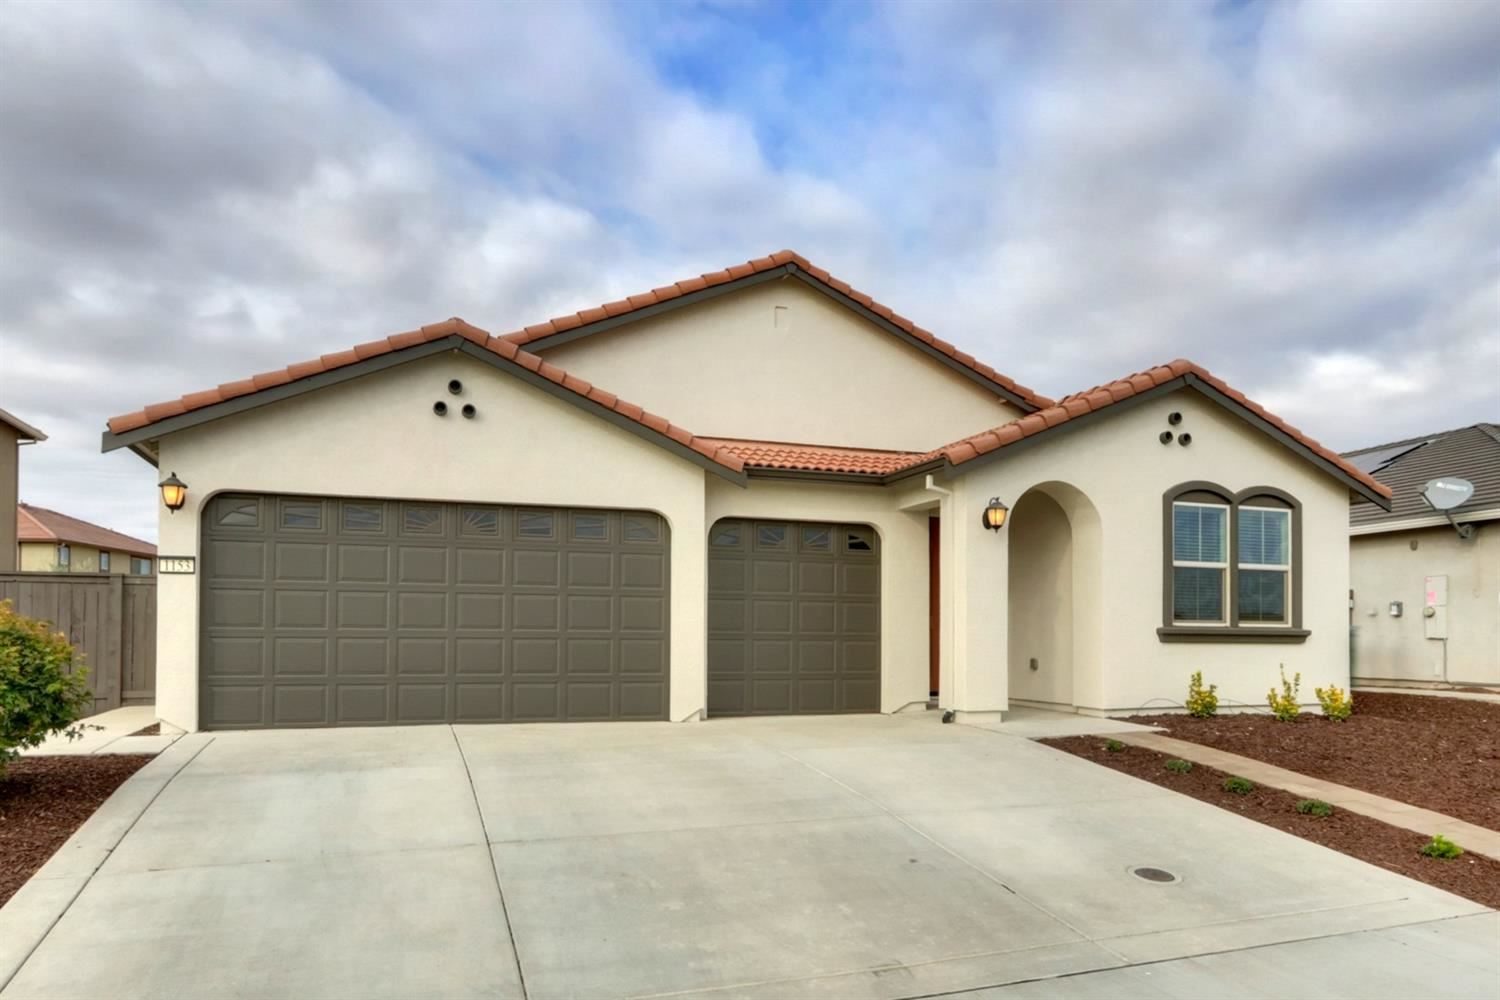 Photo of 153 Old Coach Drive, Roseville, CA 95747 (MLS # 221133475)